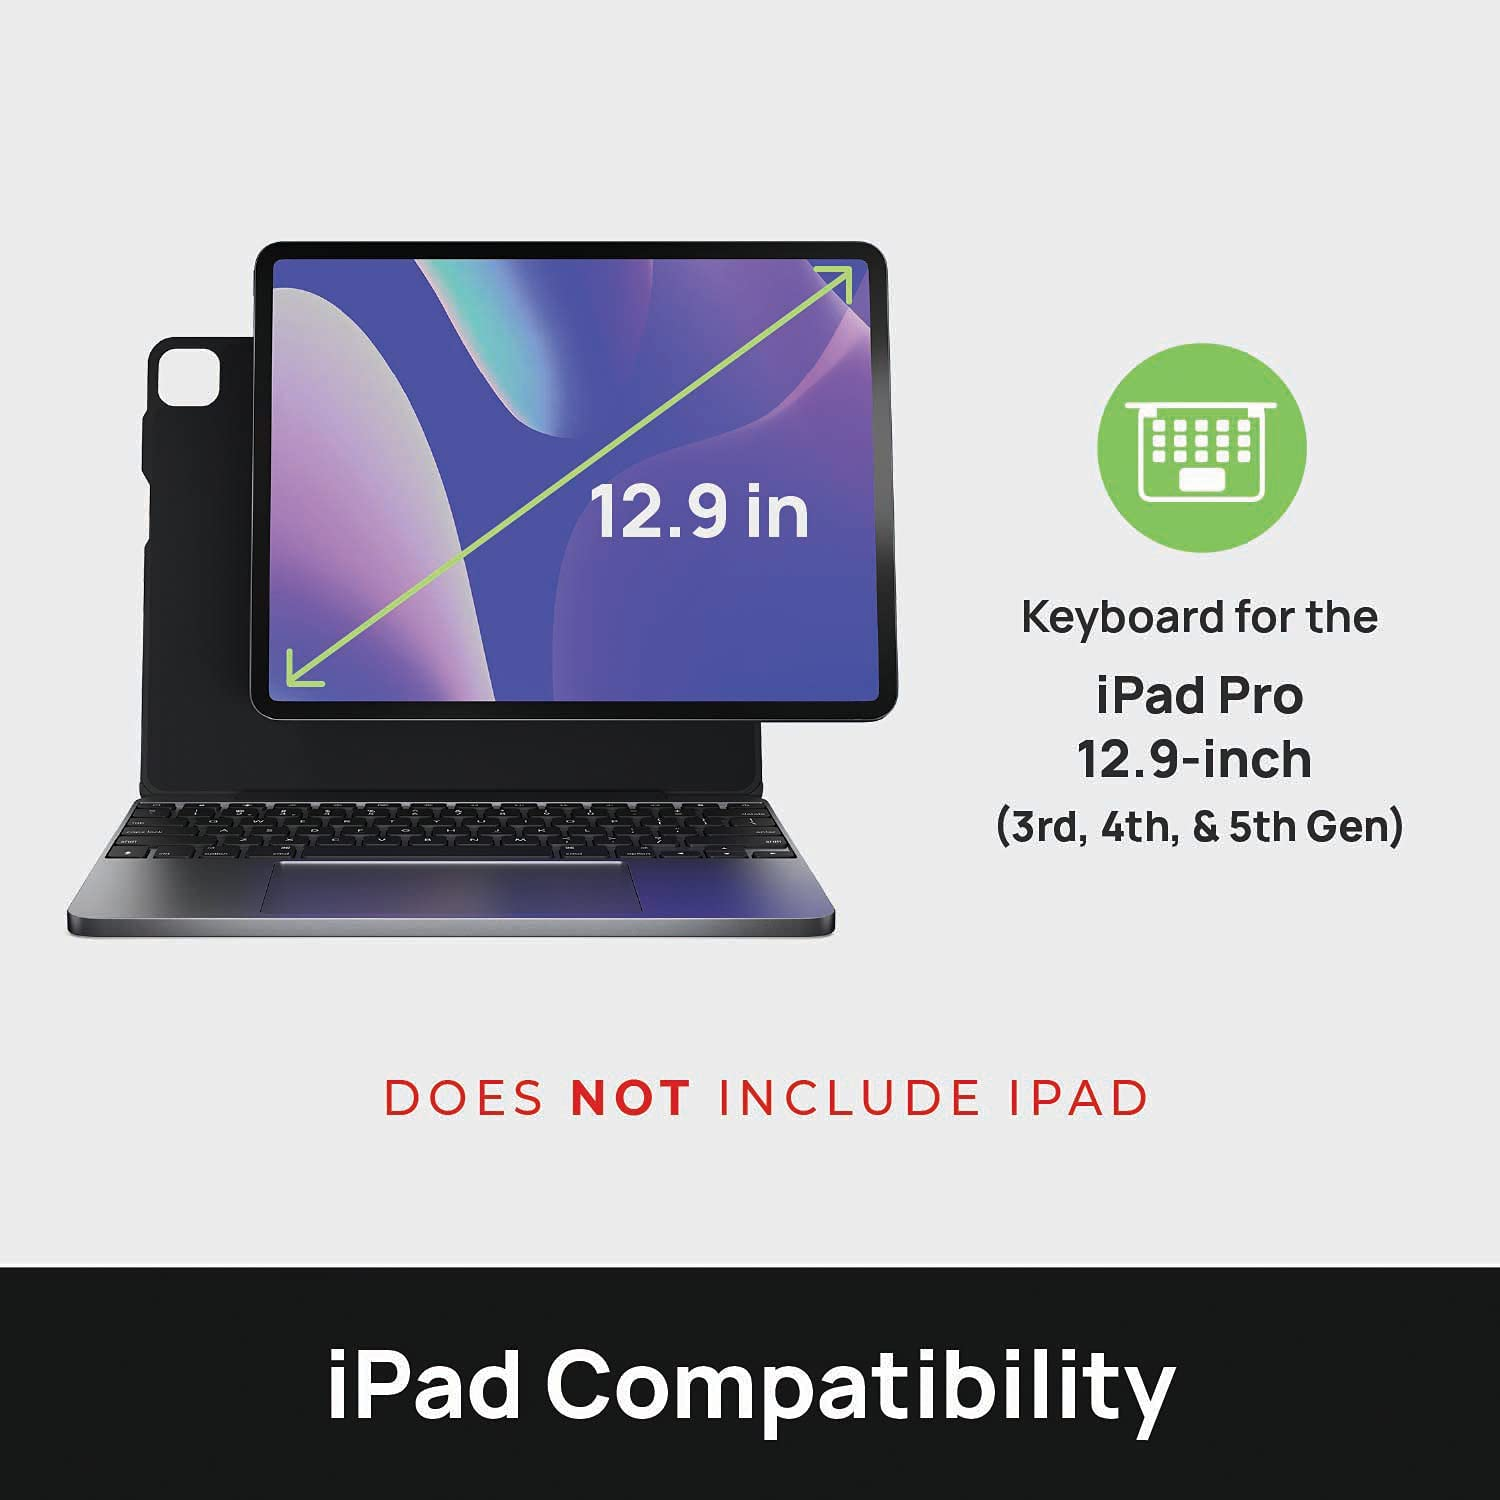 Brydge 12.9 MAX+ Wireless Keyboard Case with Multi-Touch Trackpad for iPad Pro 12.9-inch (3rd, 4th & 5th Gen), Integrated Magnetic SnapFit Case   Space Gray Keyboard with Black Case